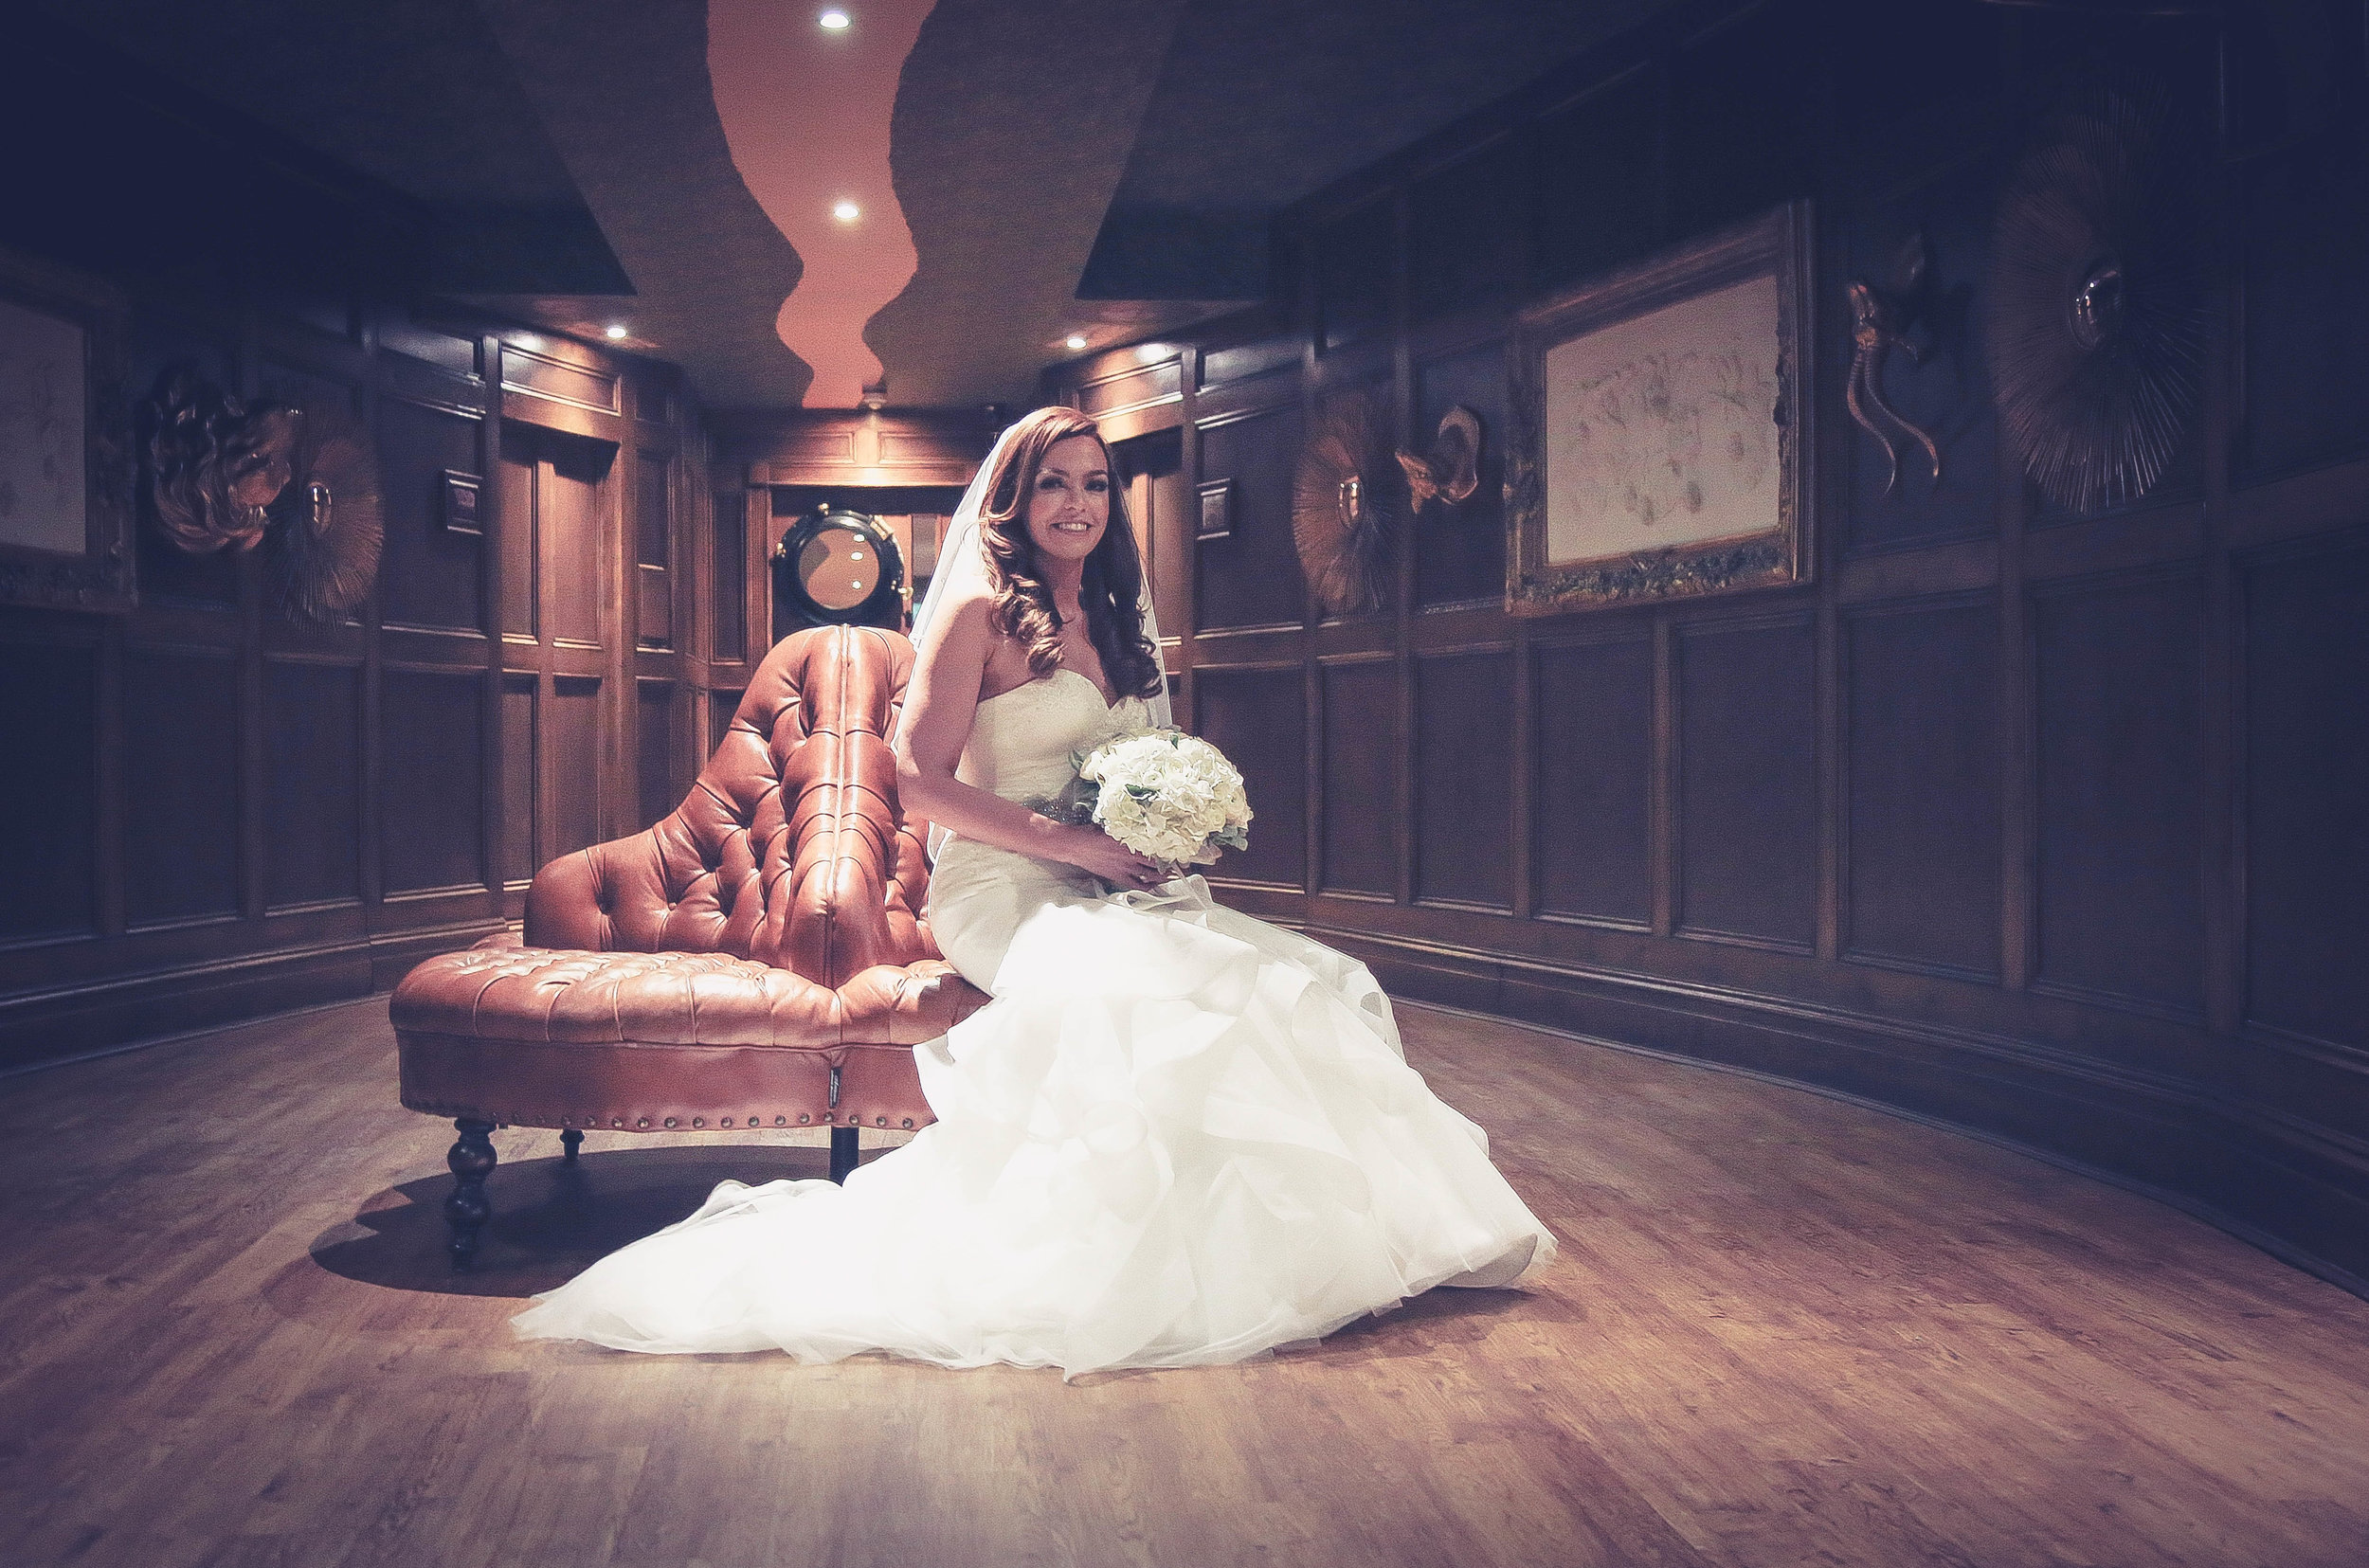 Weddings at the shankly hotel liverpool-50.jpg